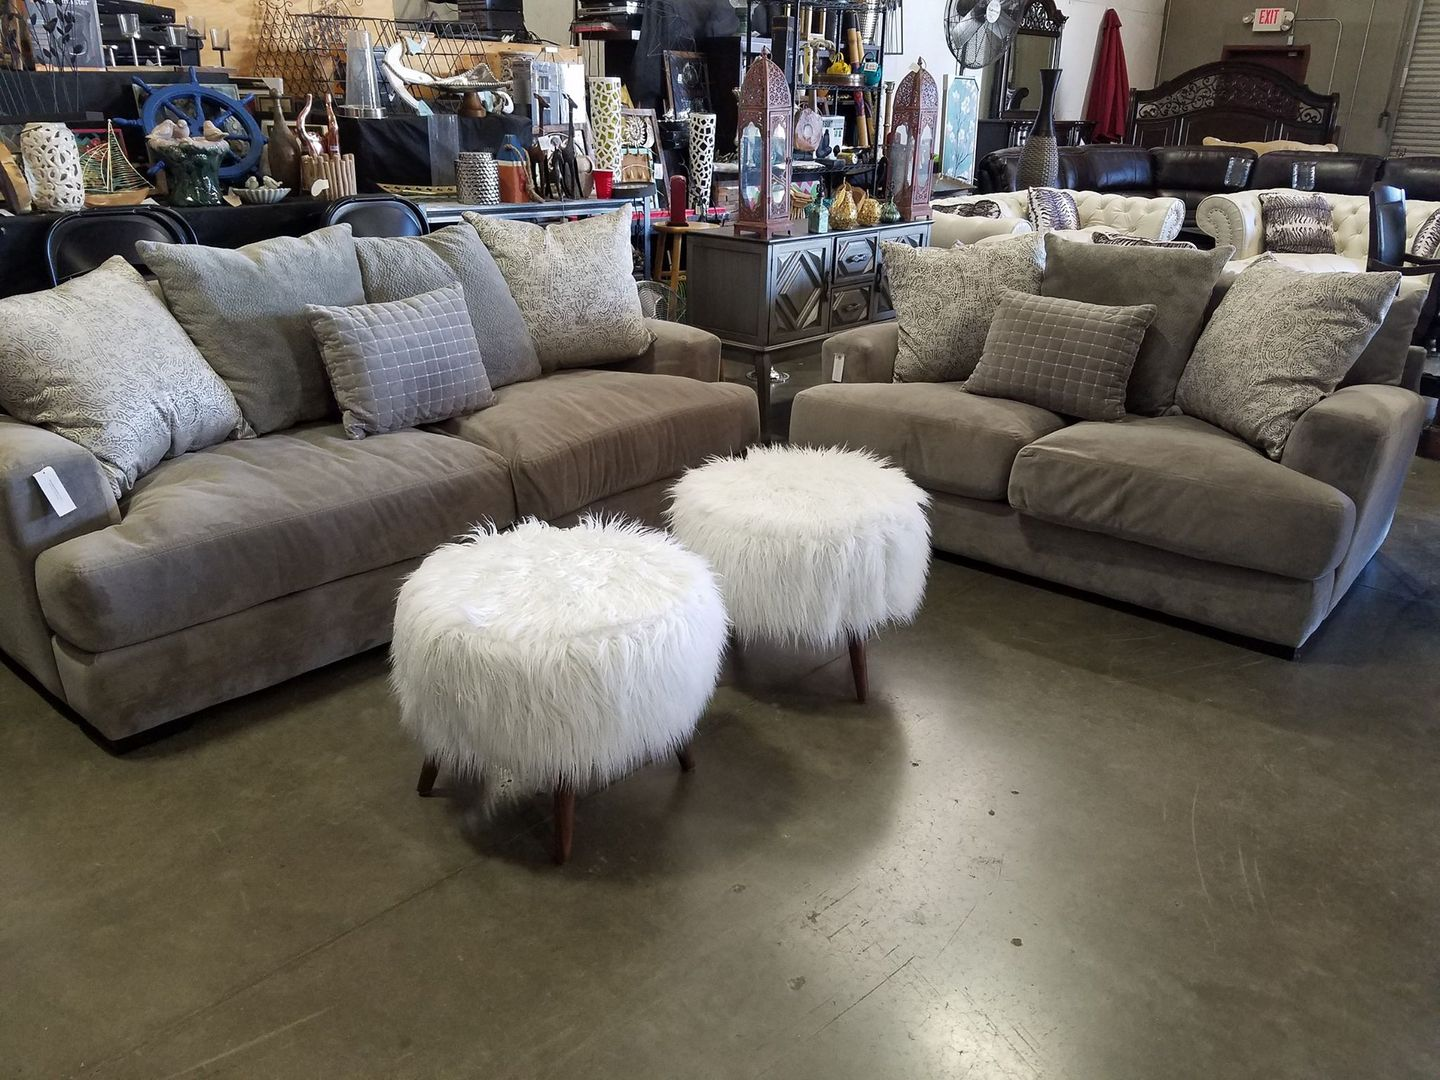 New home furniture at wholesale furniture prices